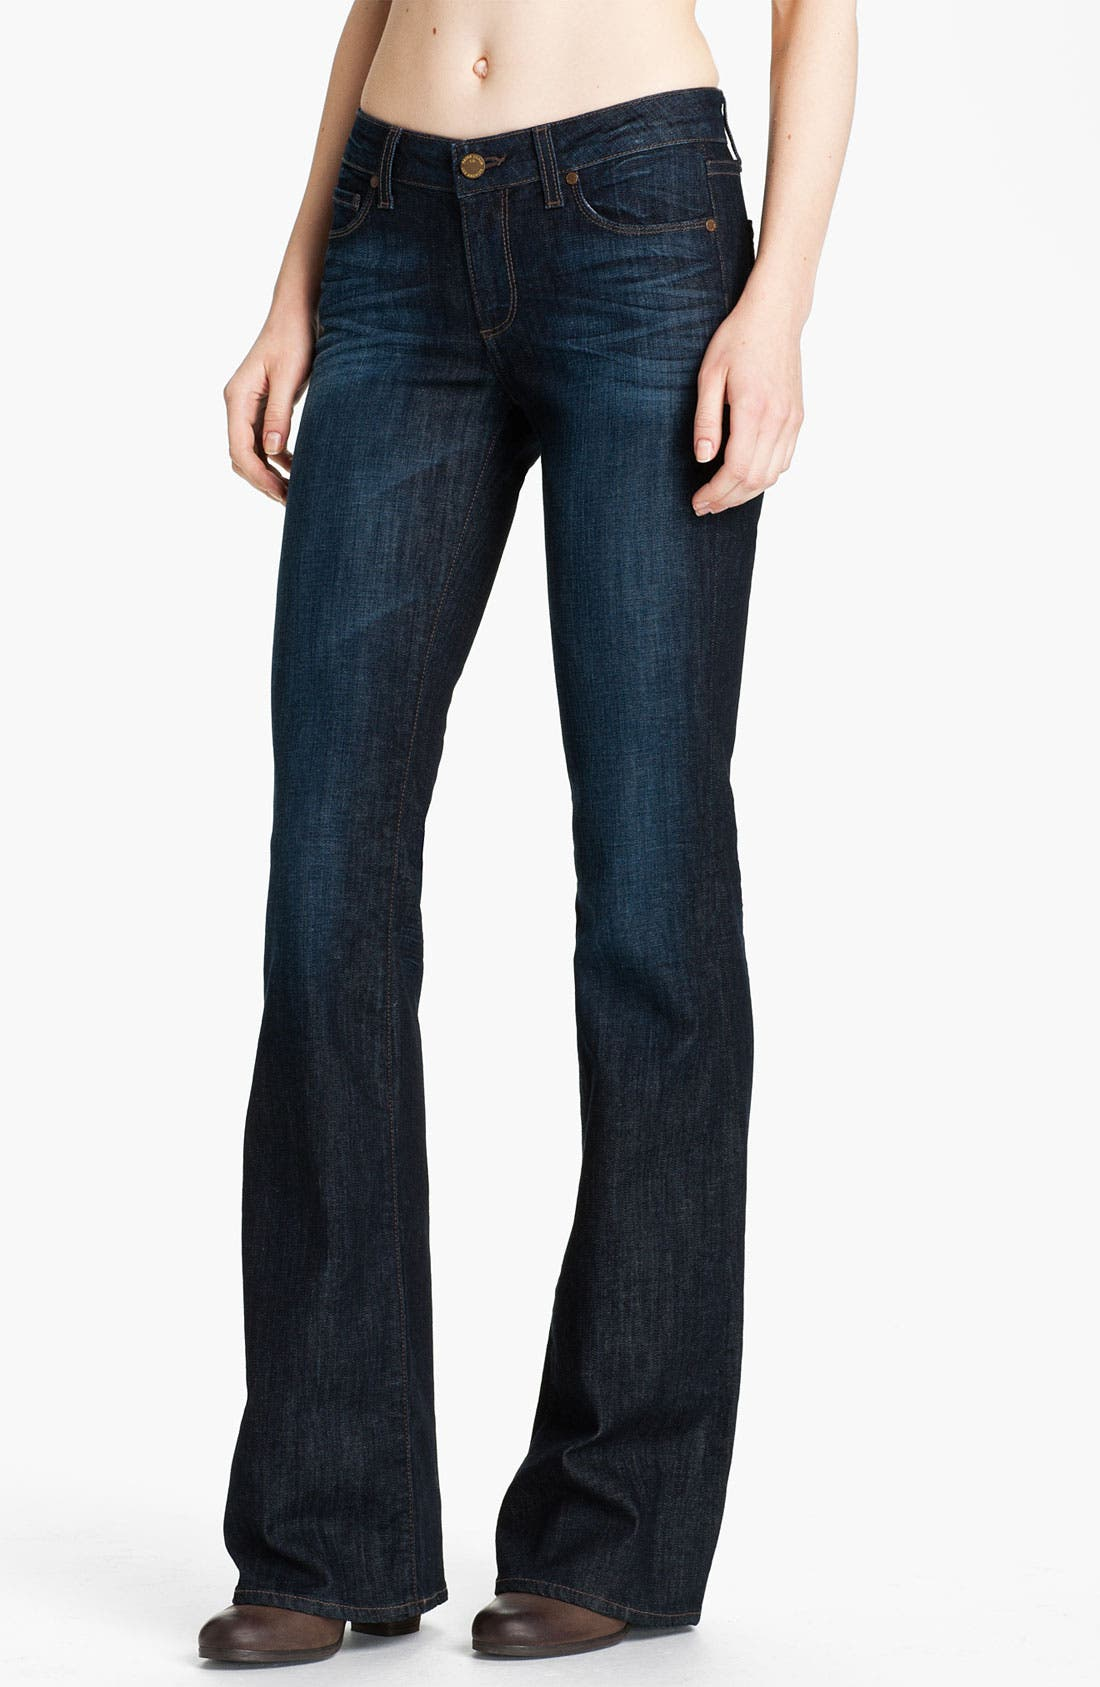 Alternate Image 1 Selected - Paige Denim 'Skyline' Bootcut Jeans (Hartley)